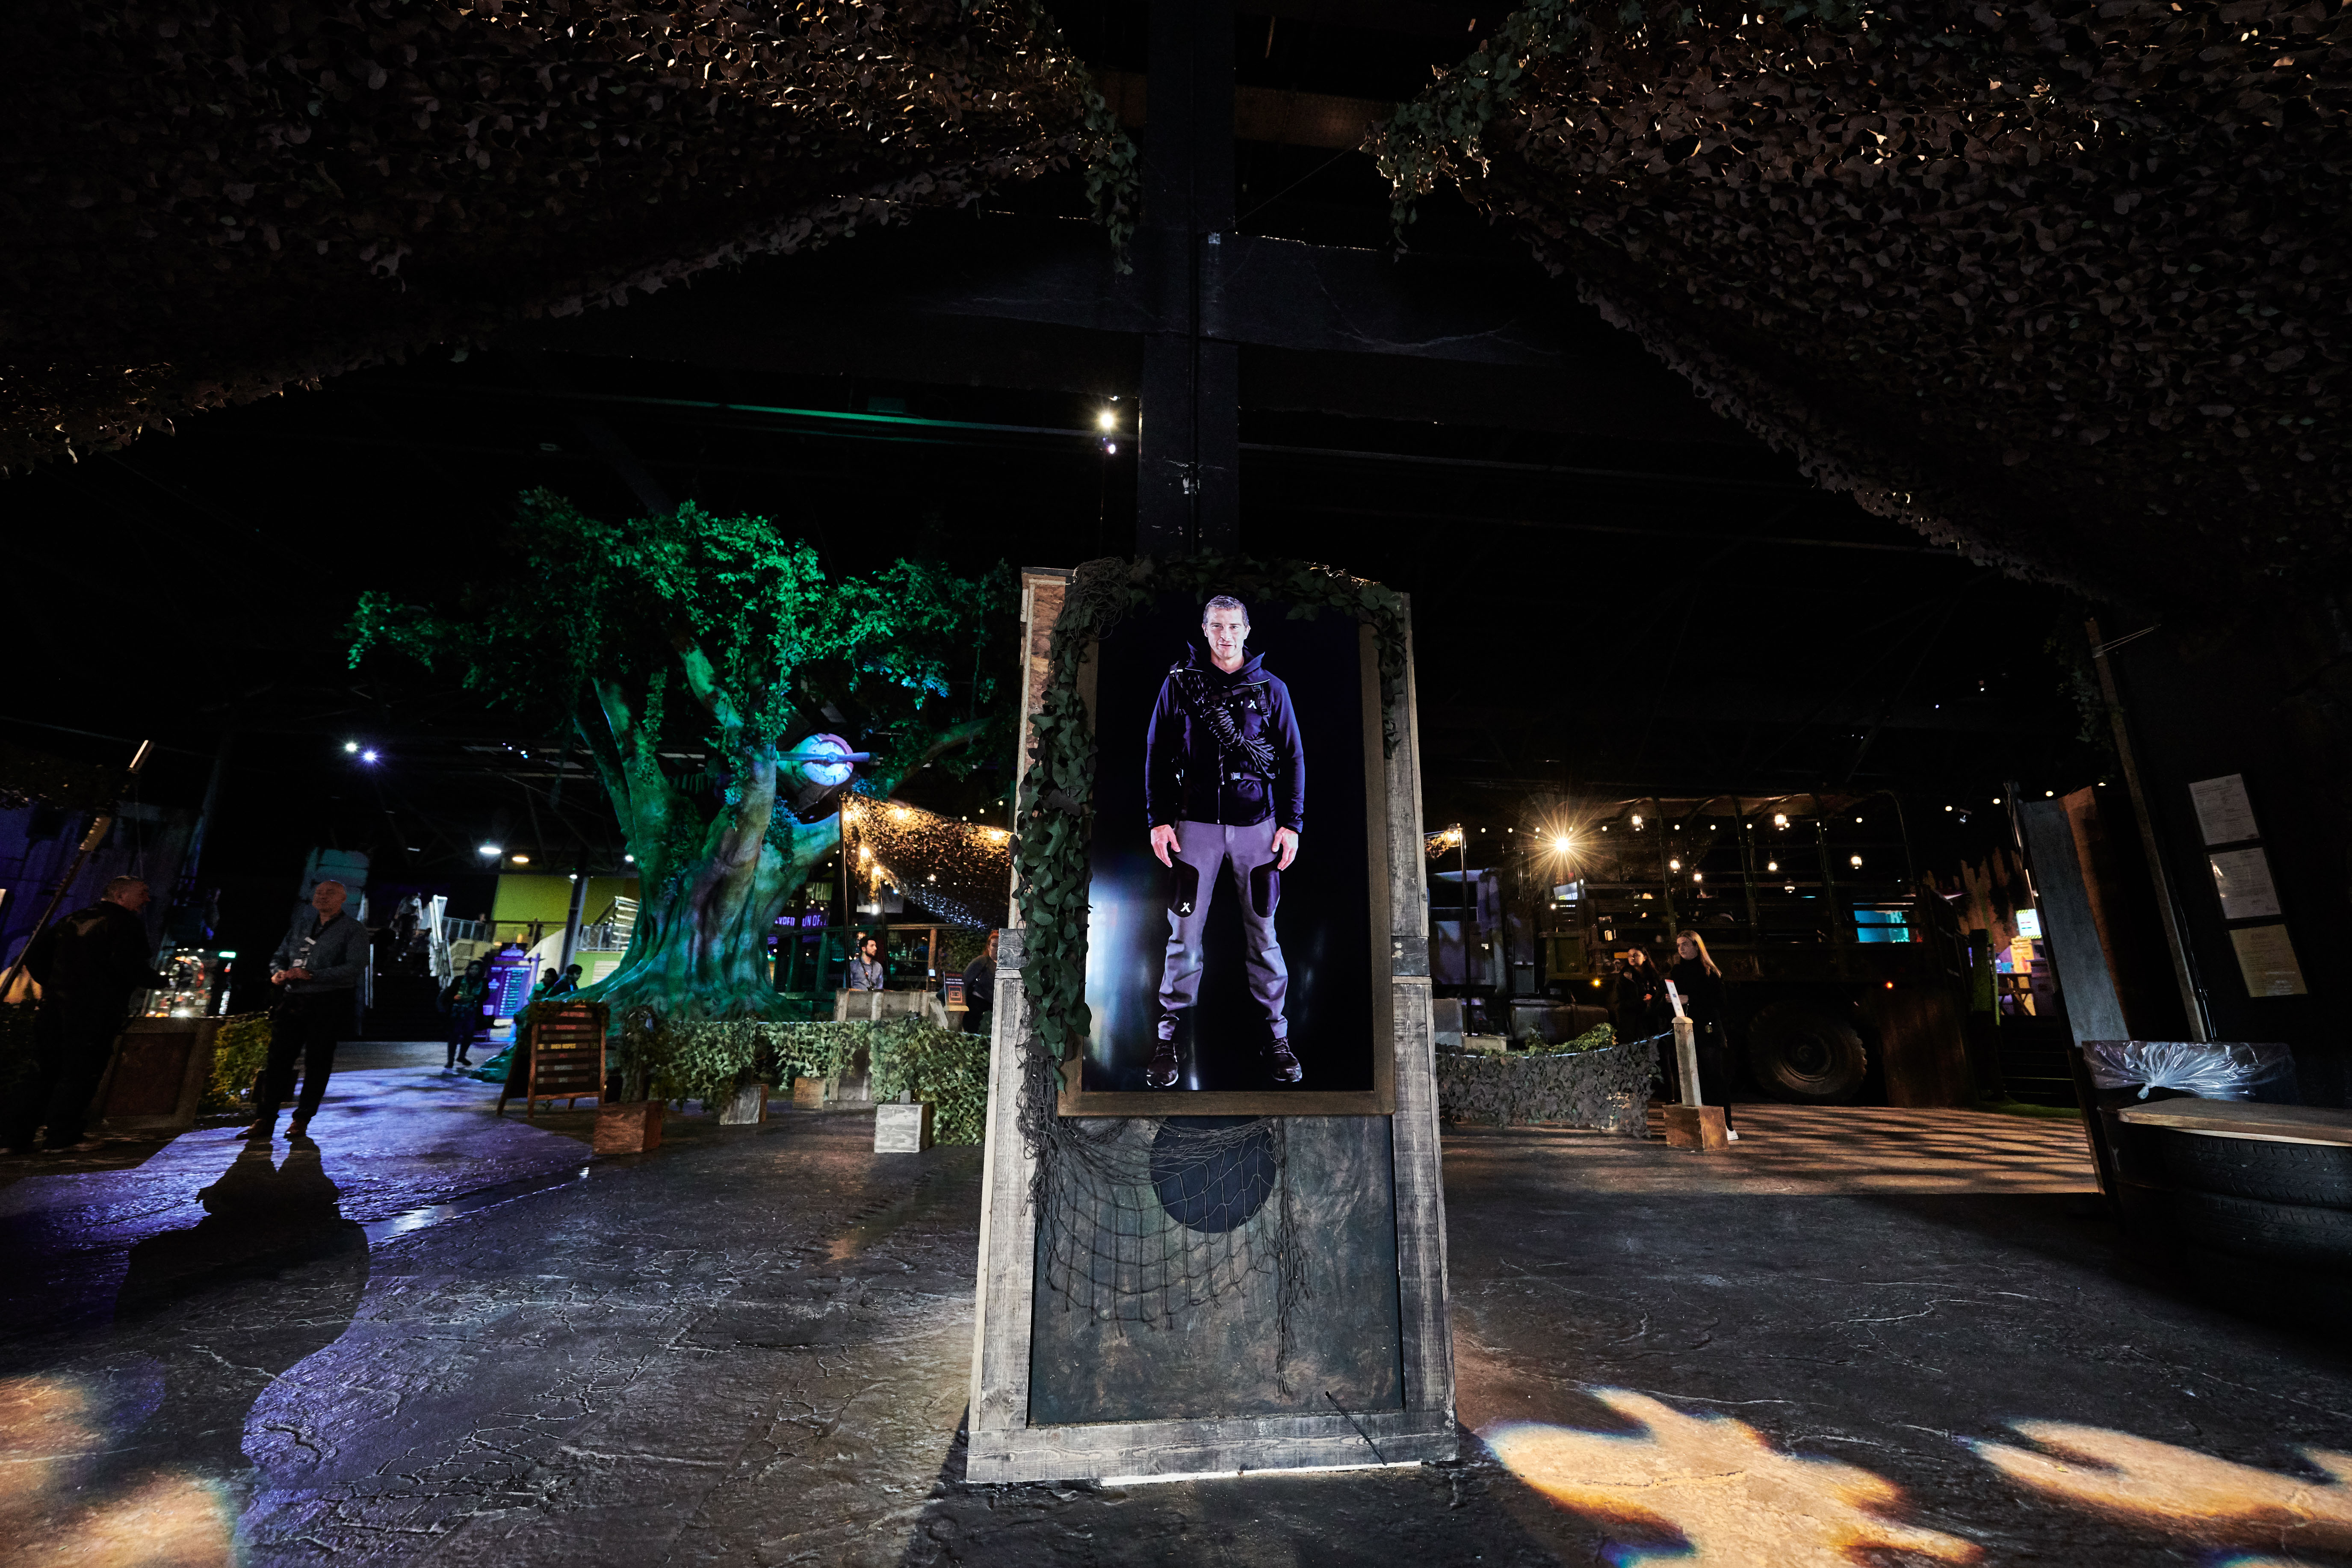 Bear Grylls welcomes guest on a screen in The Bear Grylls Adventure main entrance